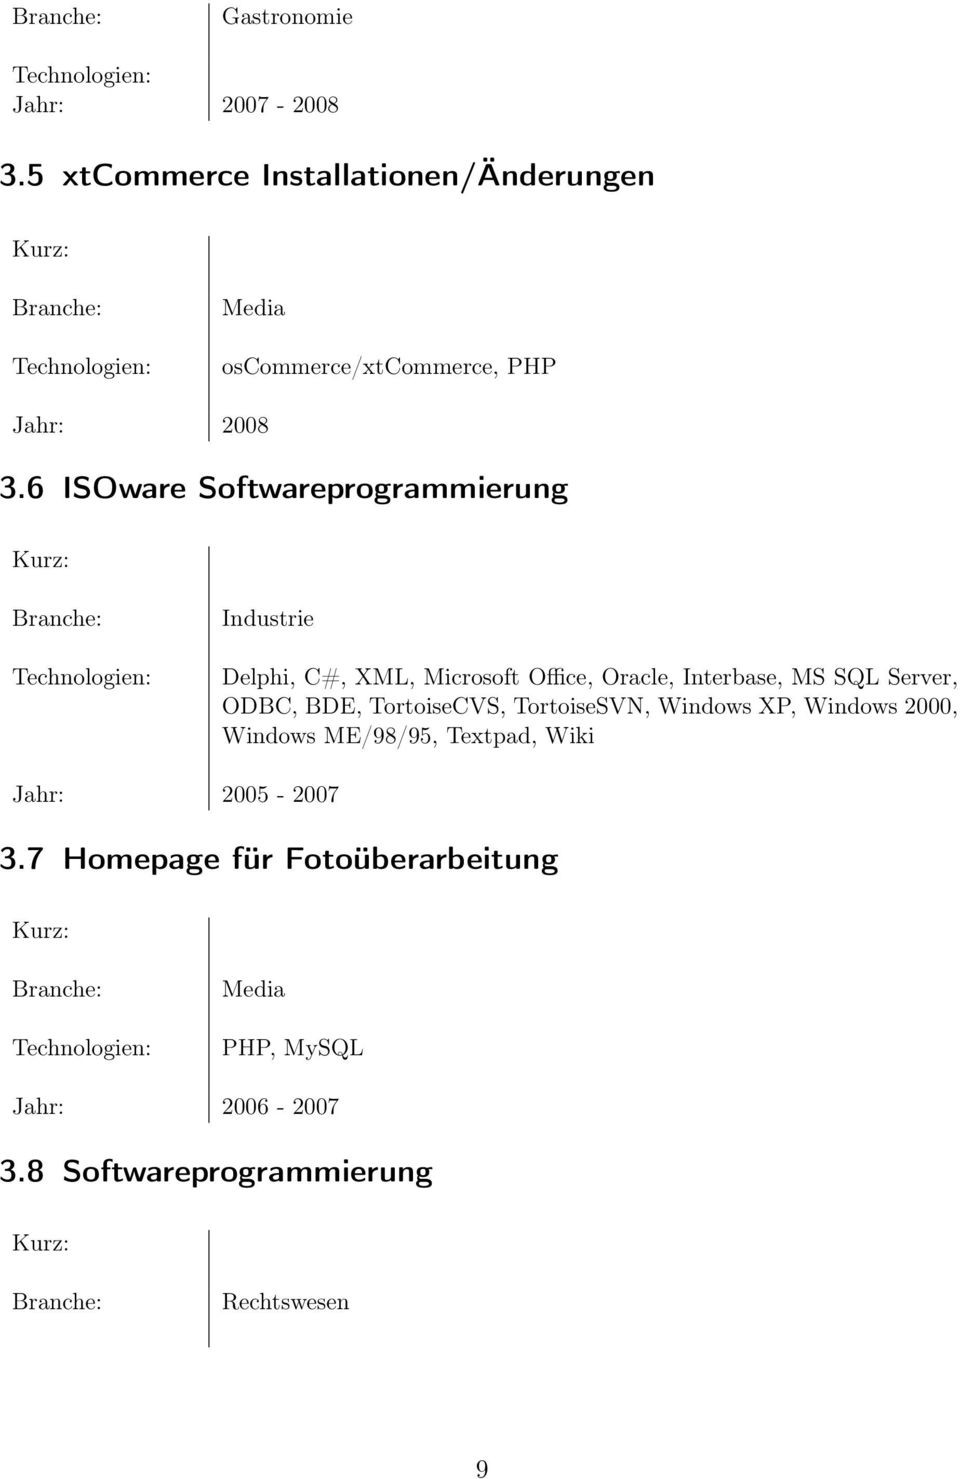 6 ISOware Softwareprogrammierung Industrie Delphi, C#, XML, Microsoft Office, Oracle, Interbase, MS SQL Server,